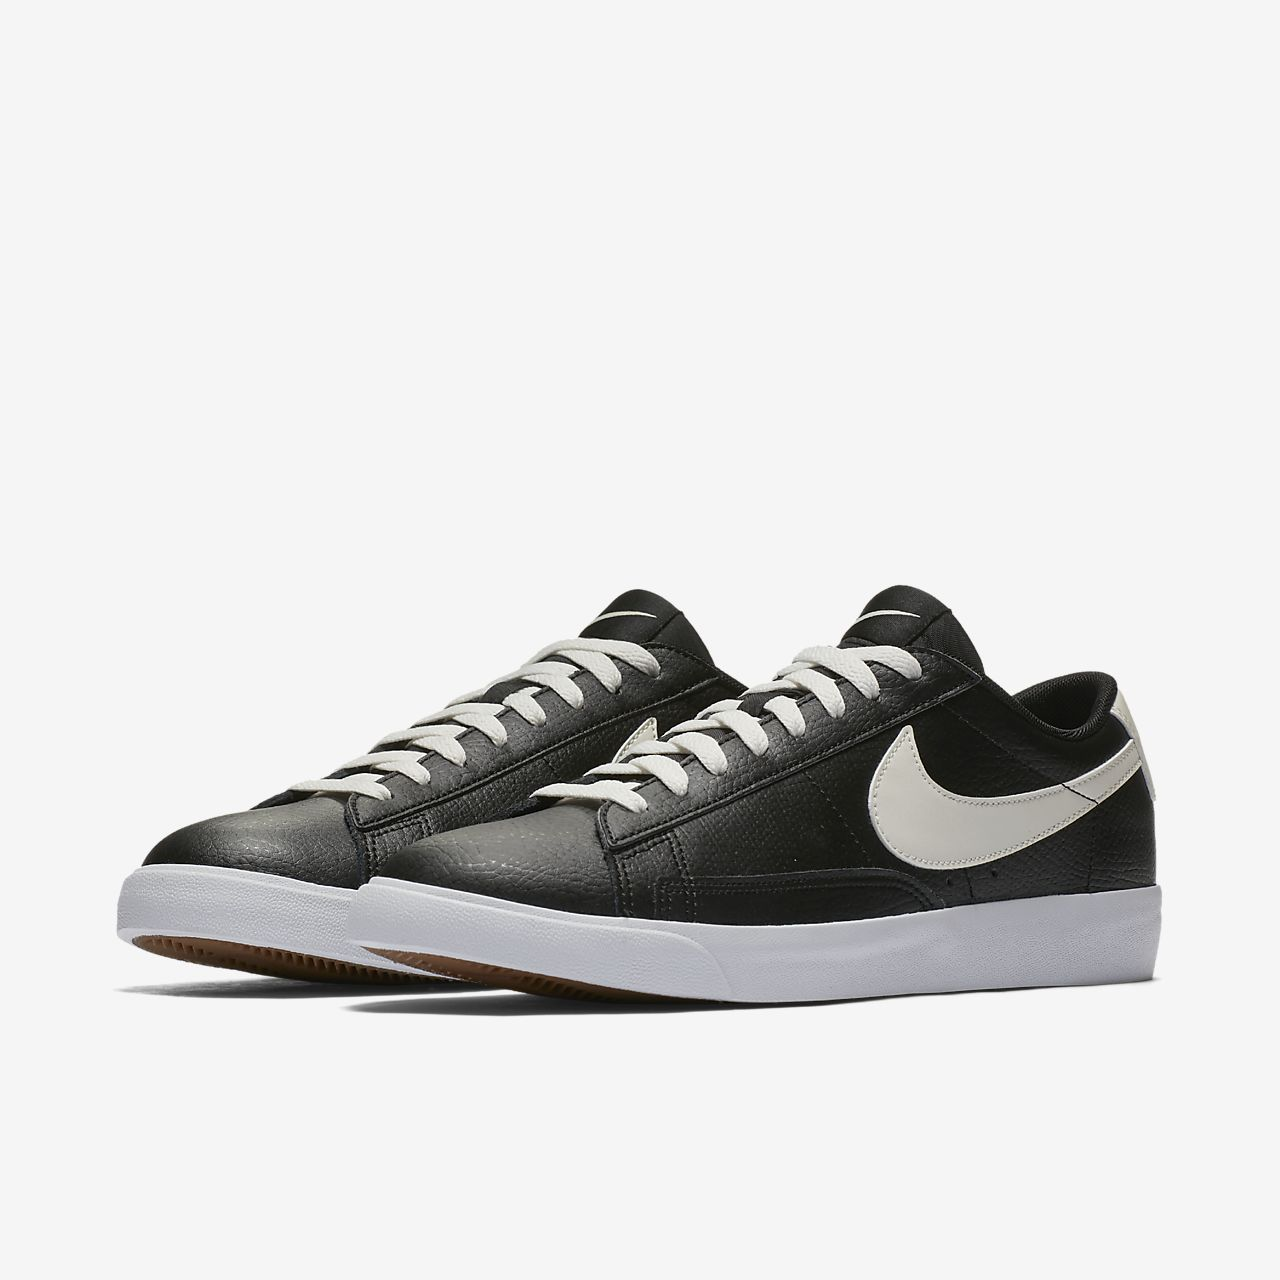 nike blazer low men's trainers wear